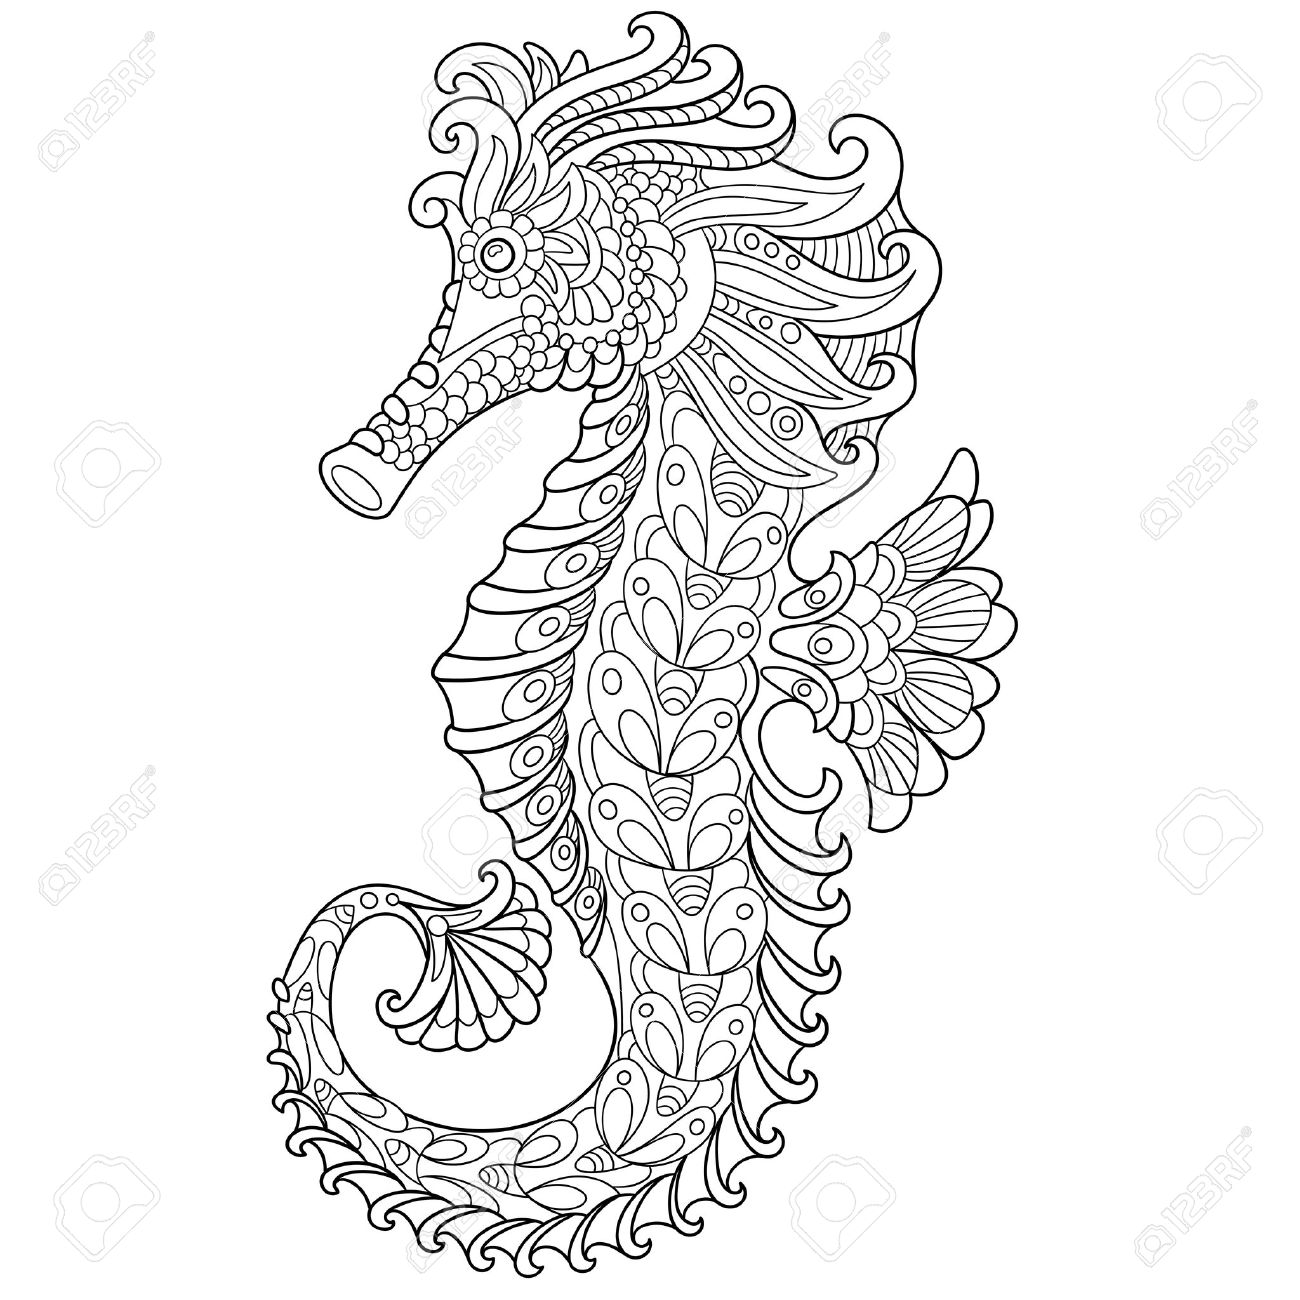 coral reef sea horse images u0026 stock pictures royalty free coral